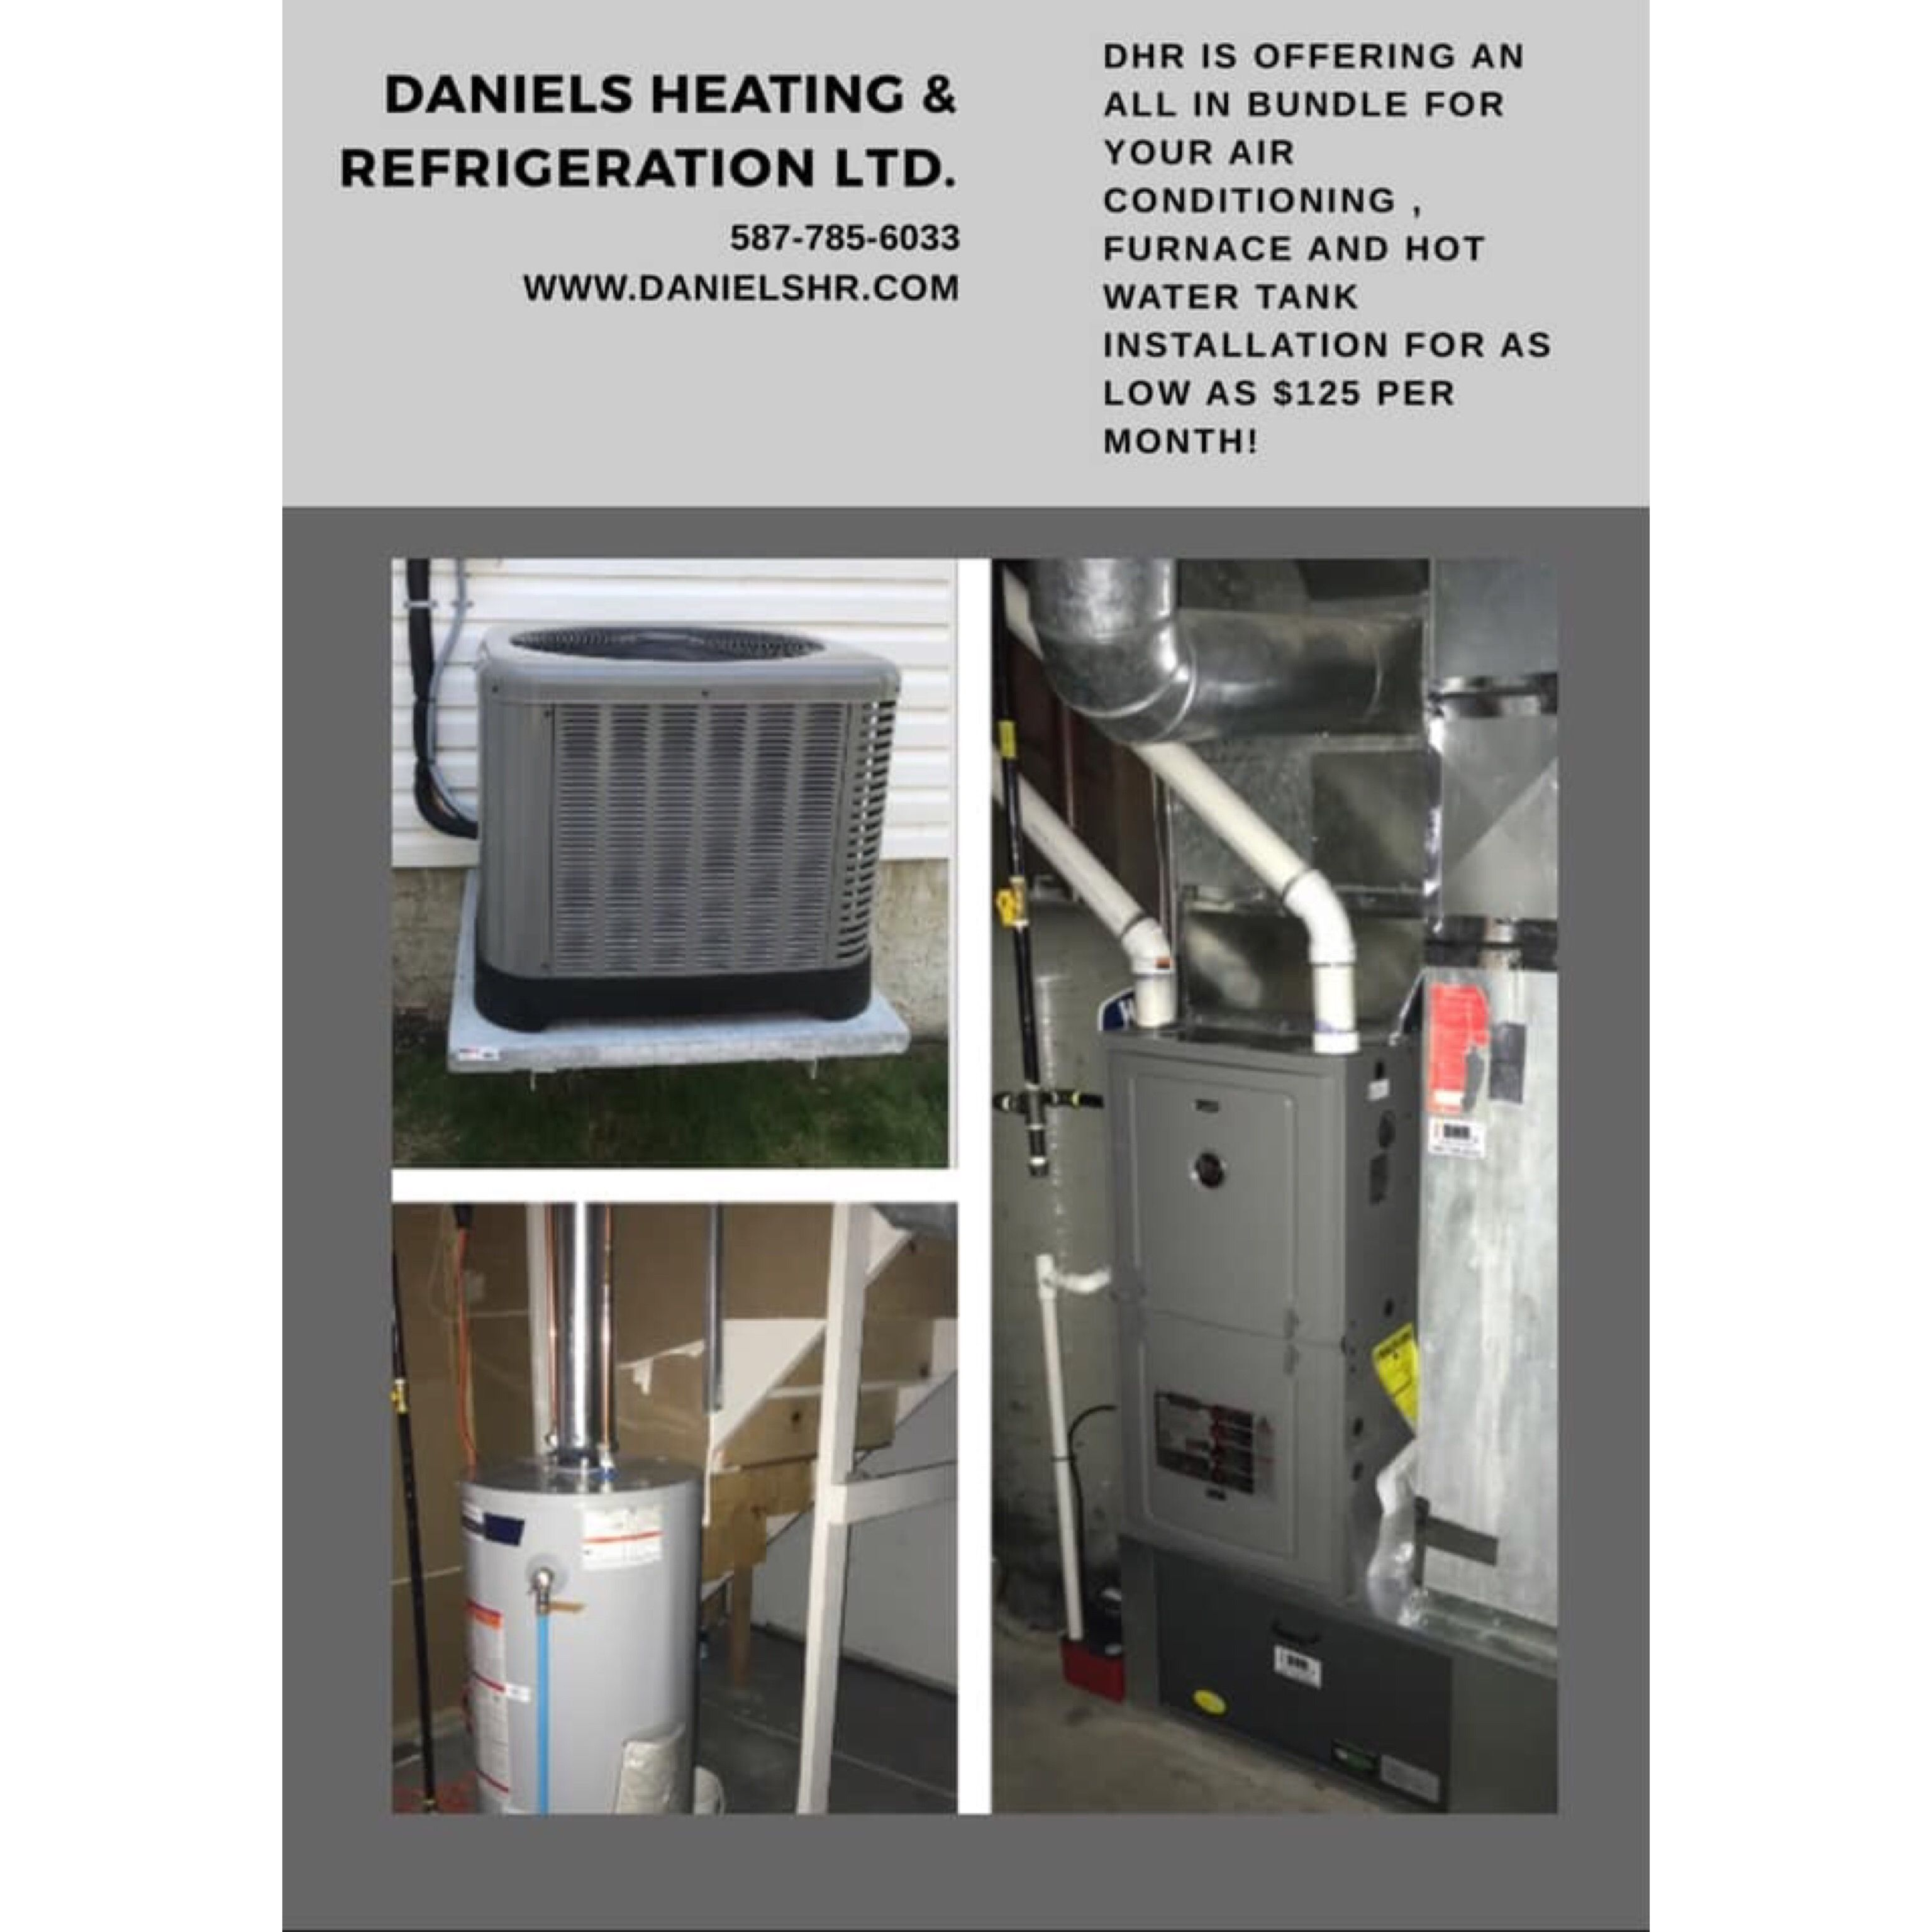 Dhr Is Offering An All In Bundle To Replace Your Air Conditioner